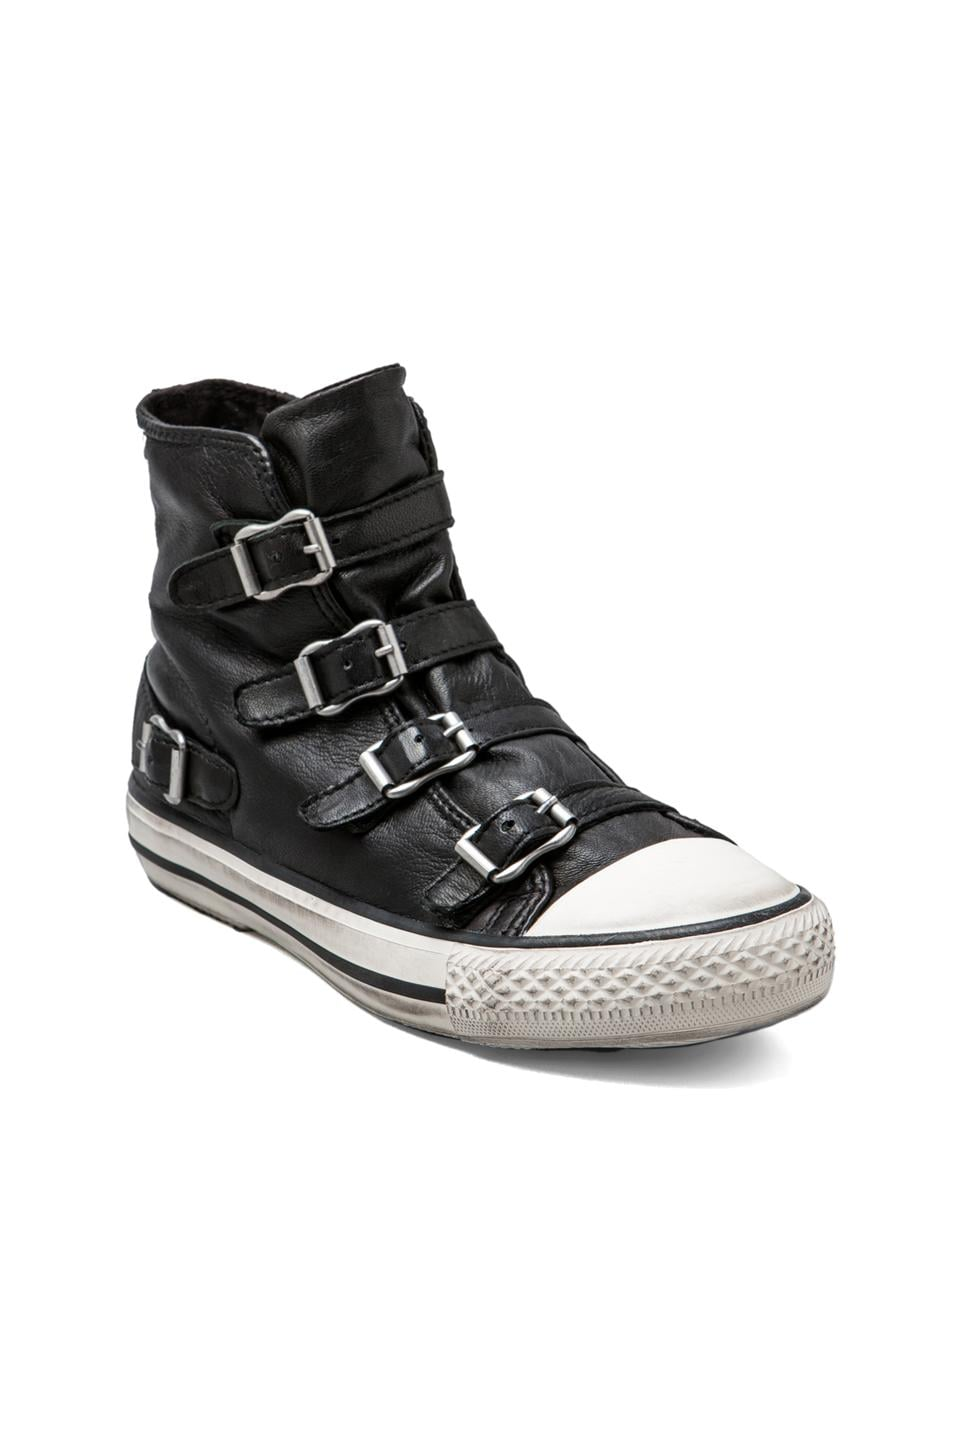 Ash Virgin Sneaker in Black